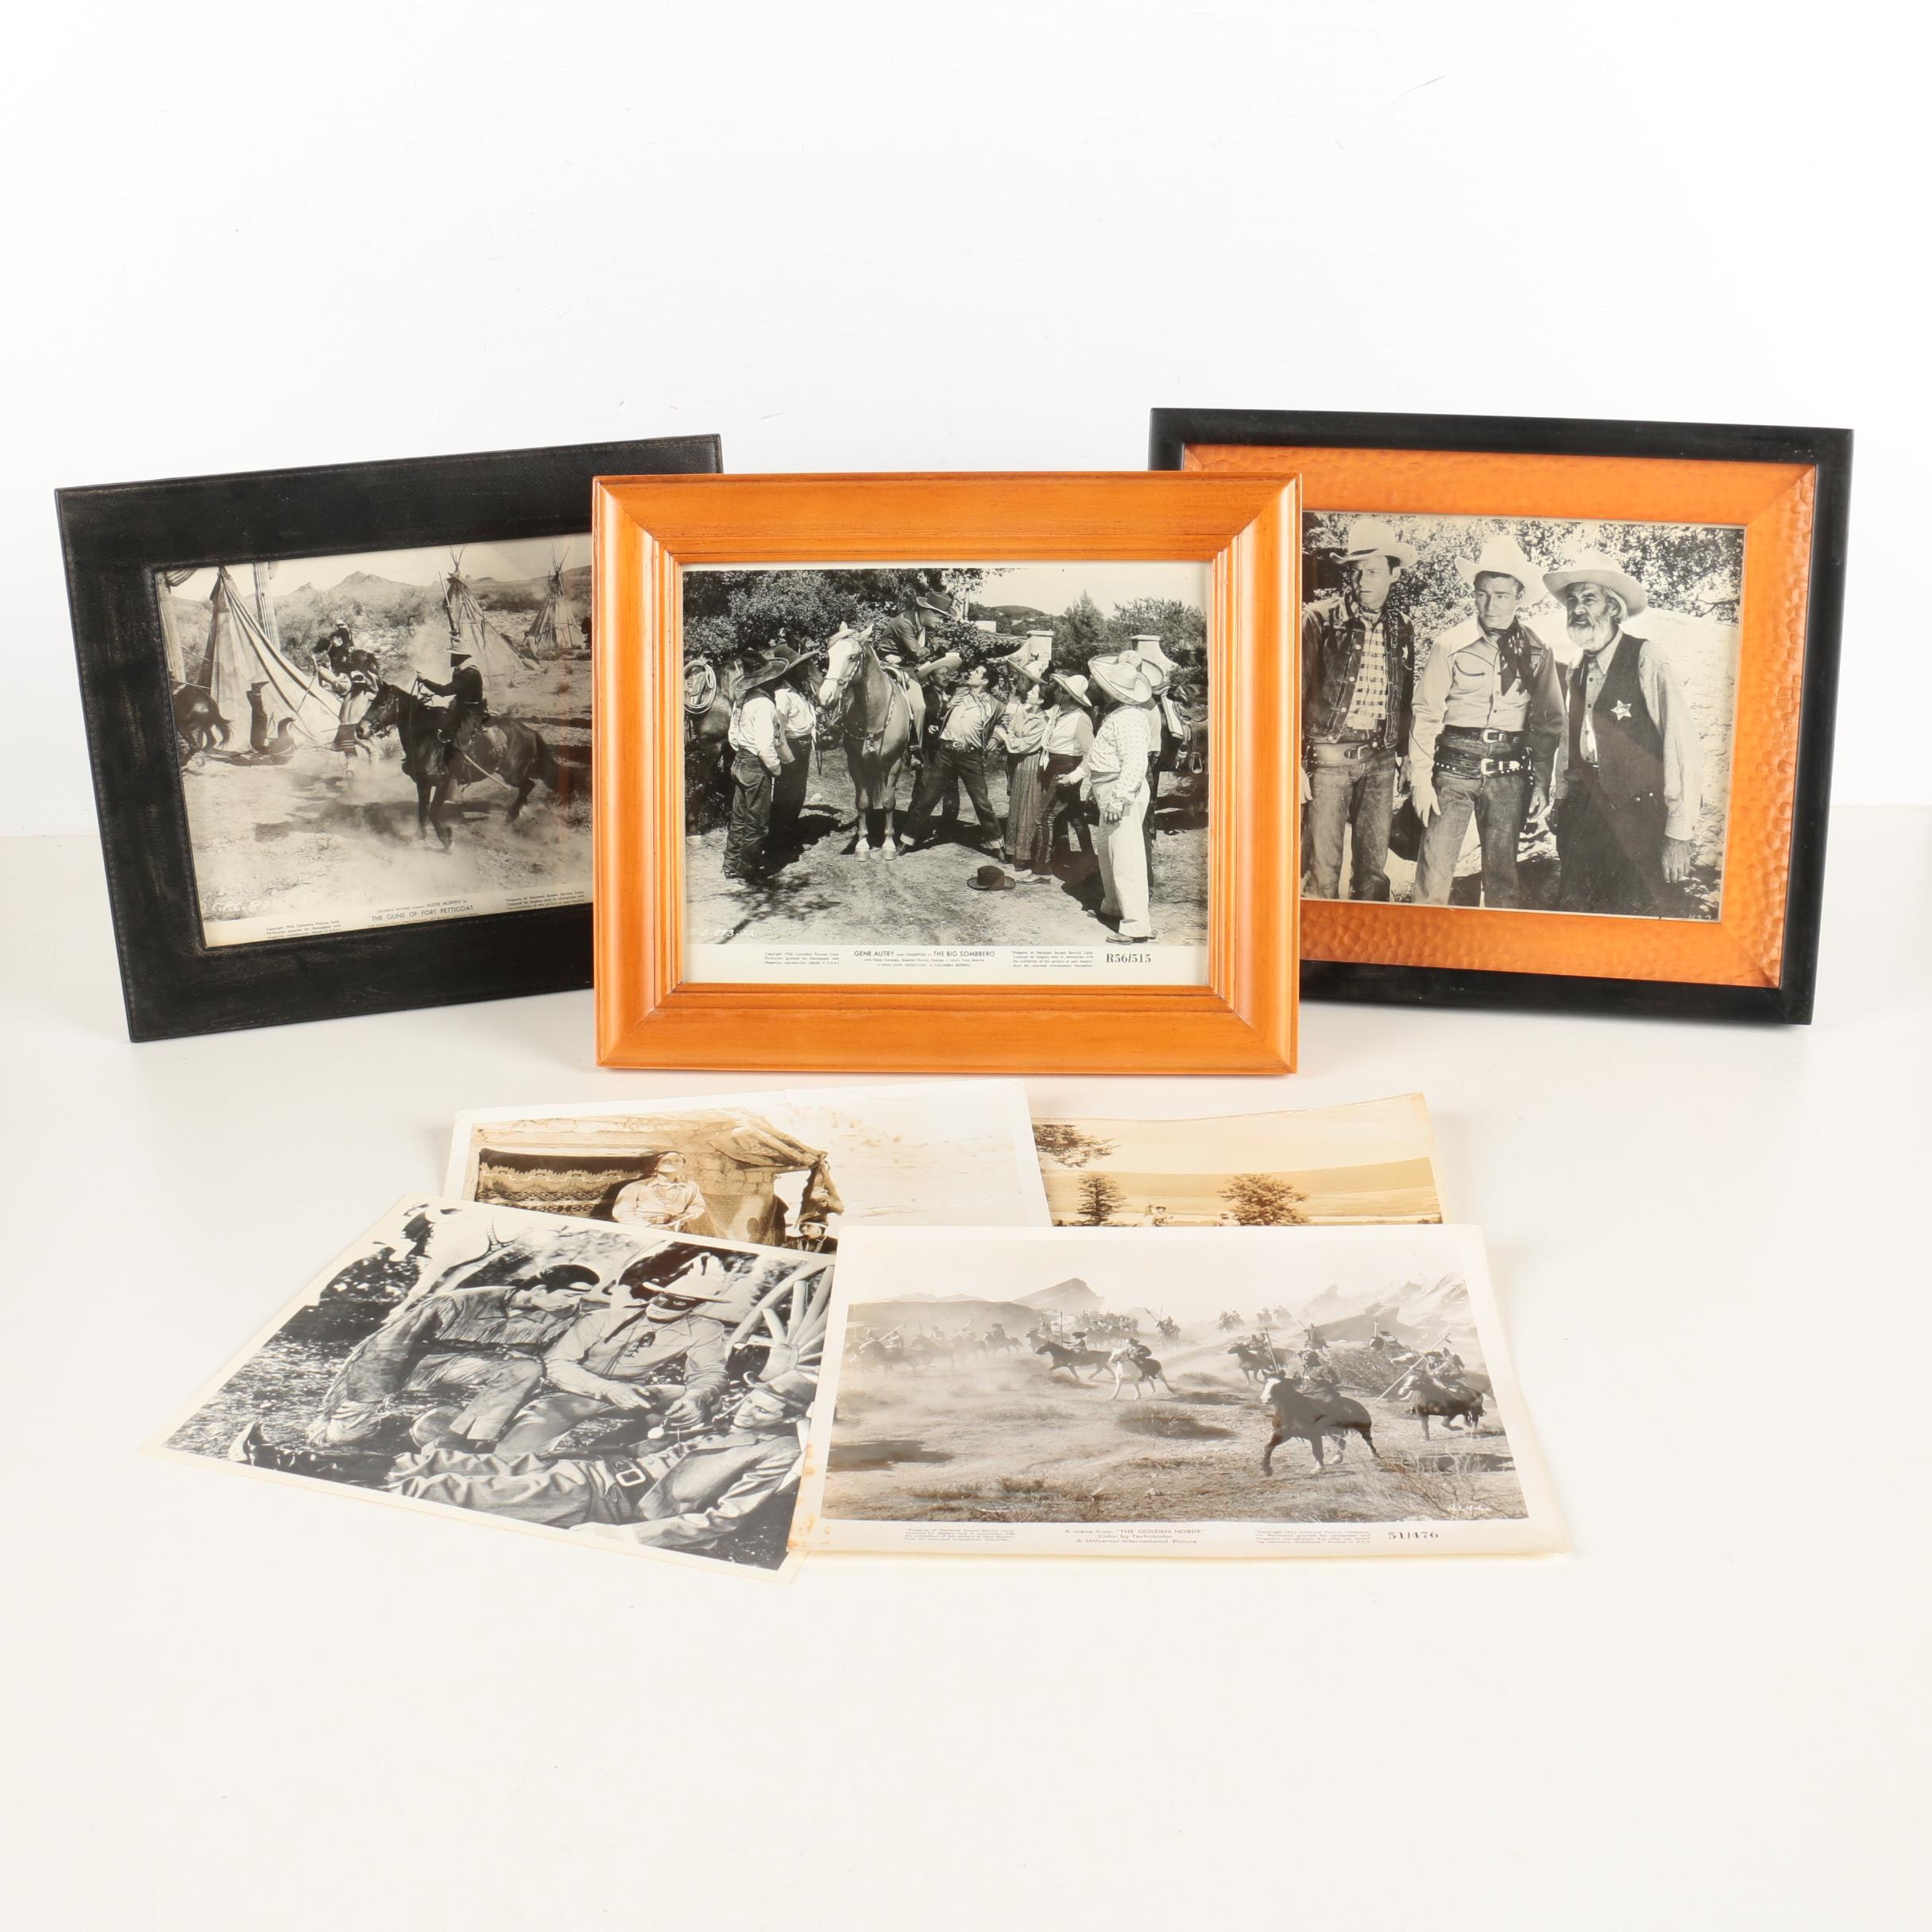 Assortment of Set Photographs and Prints of Vintage Western Movies